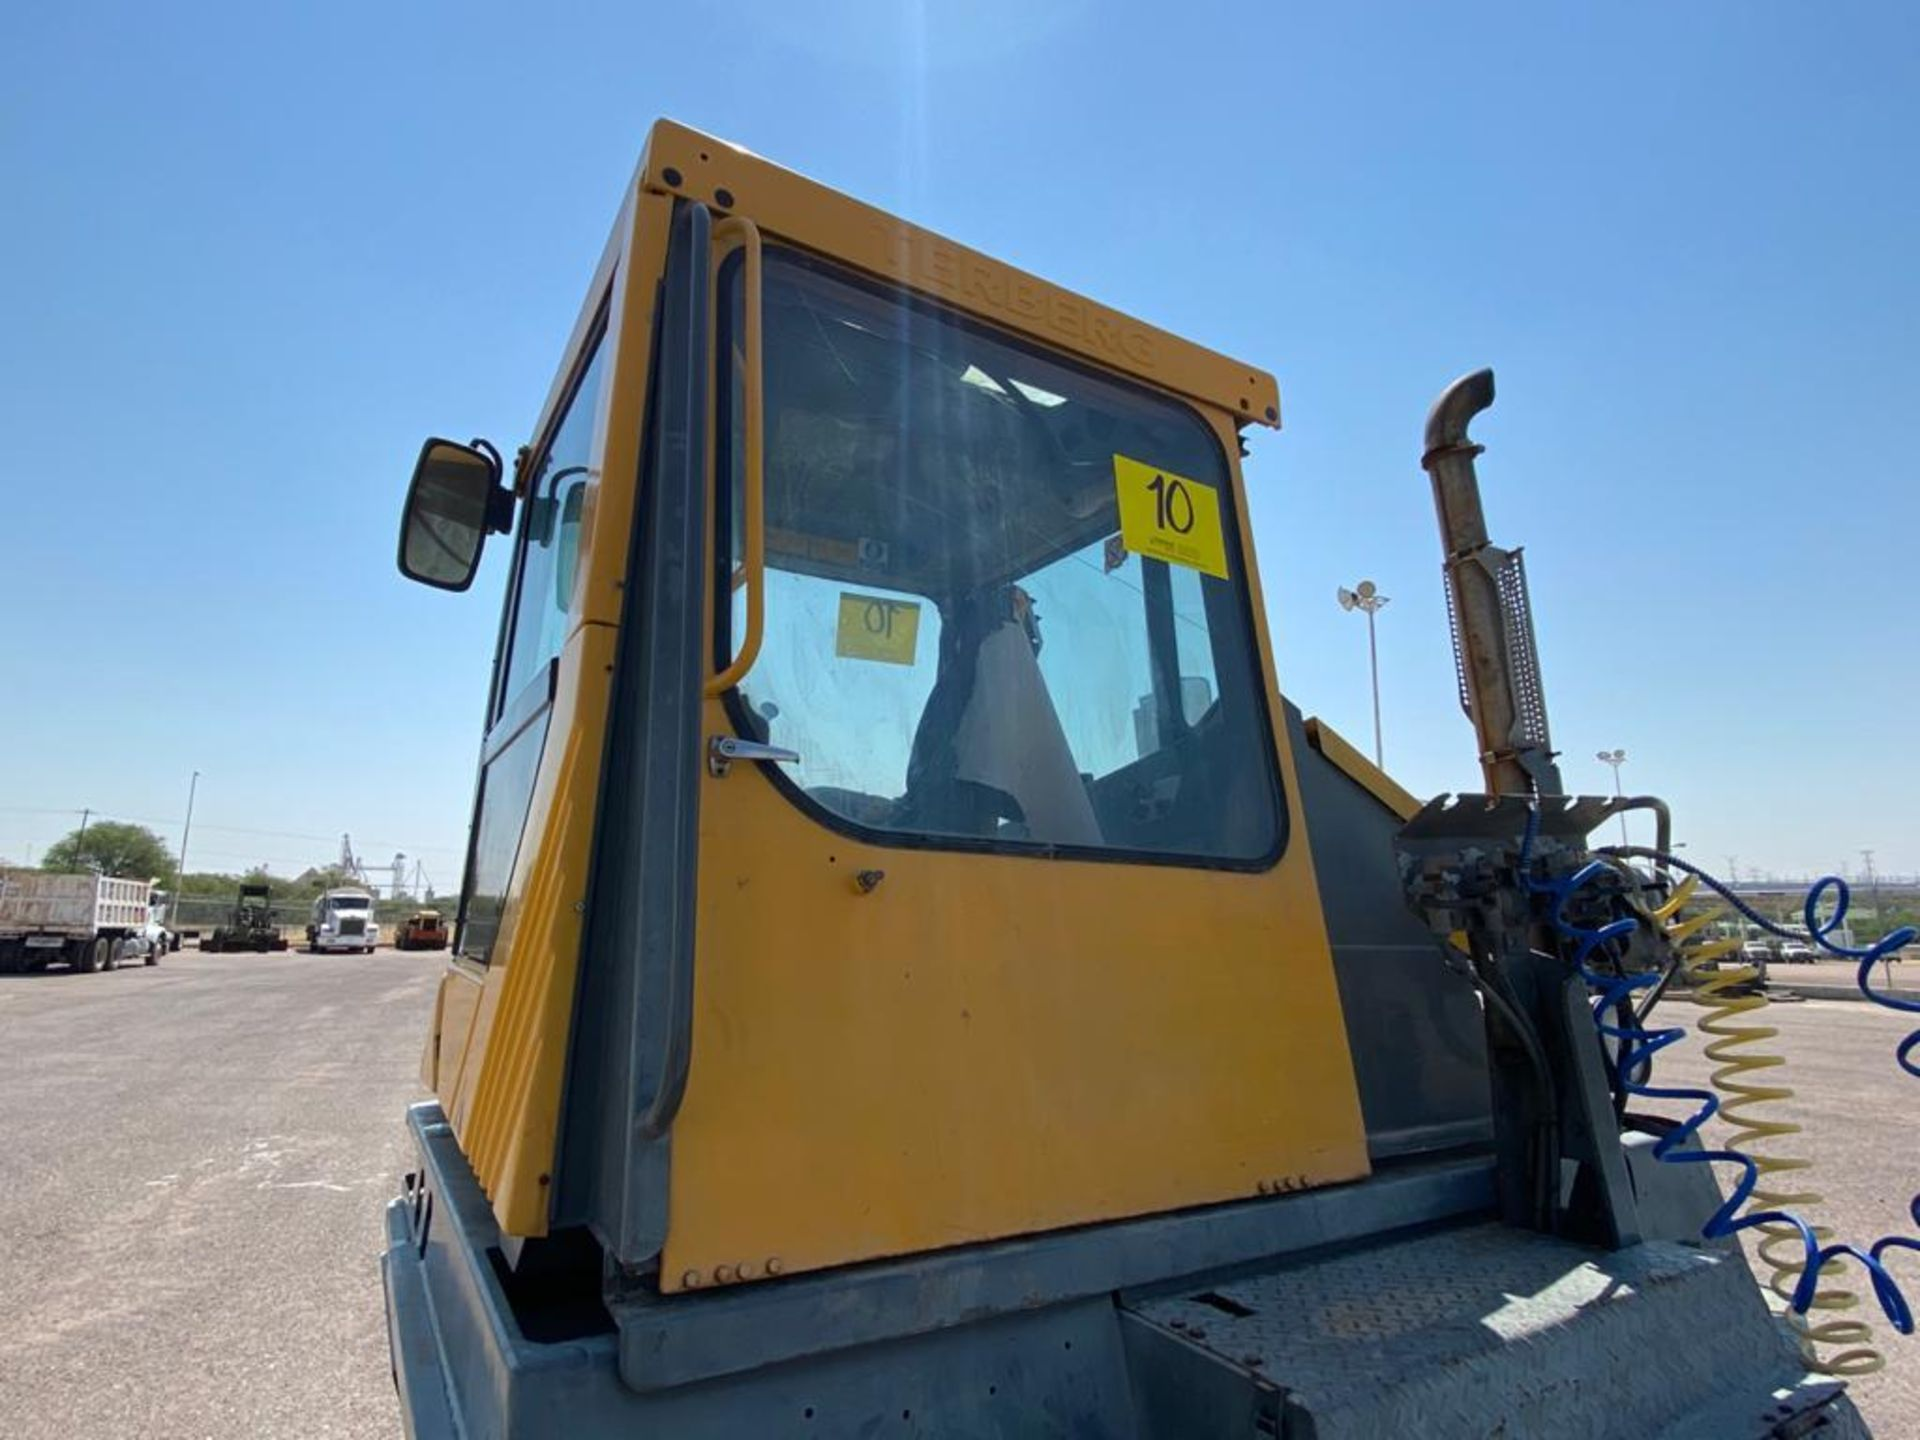 Terberg Capacity 2002 Terminal Tractor, automatic transmission, with Volvo motor - Image 12 of 28